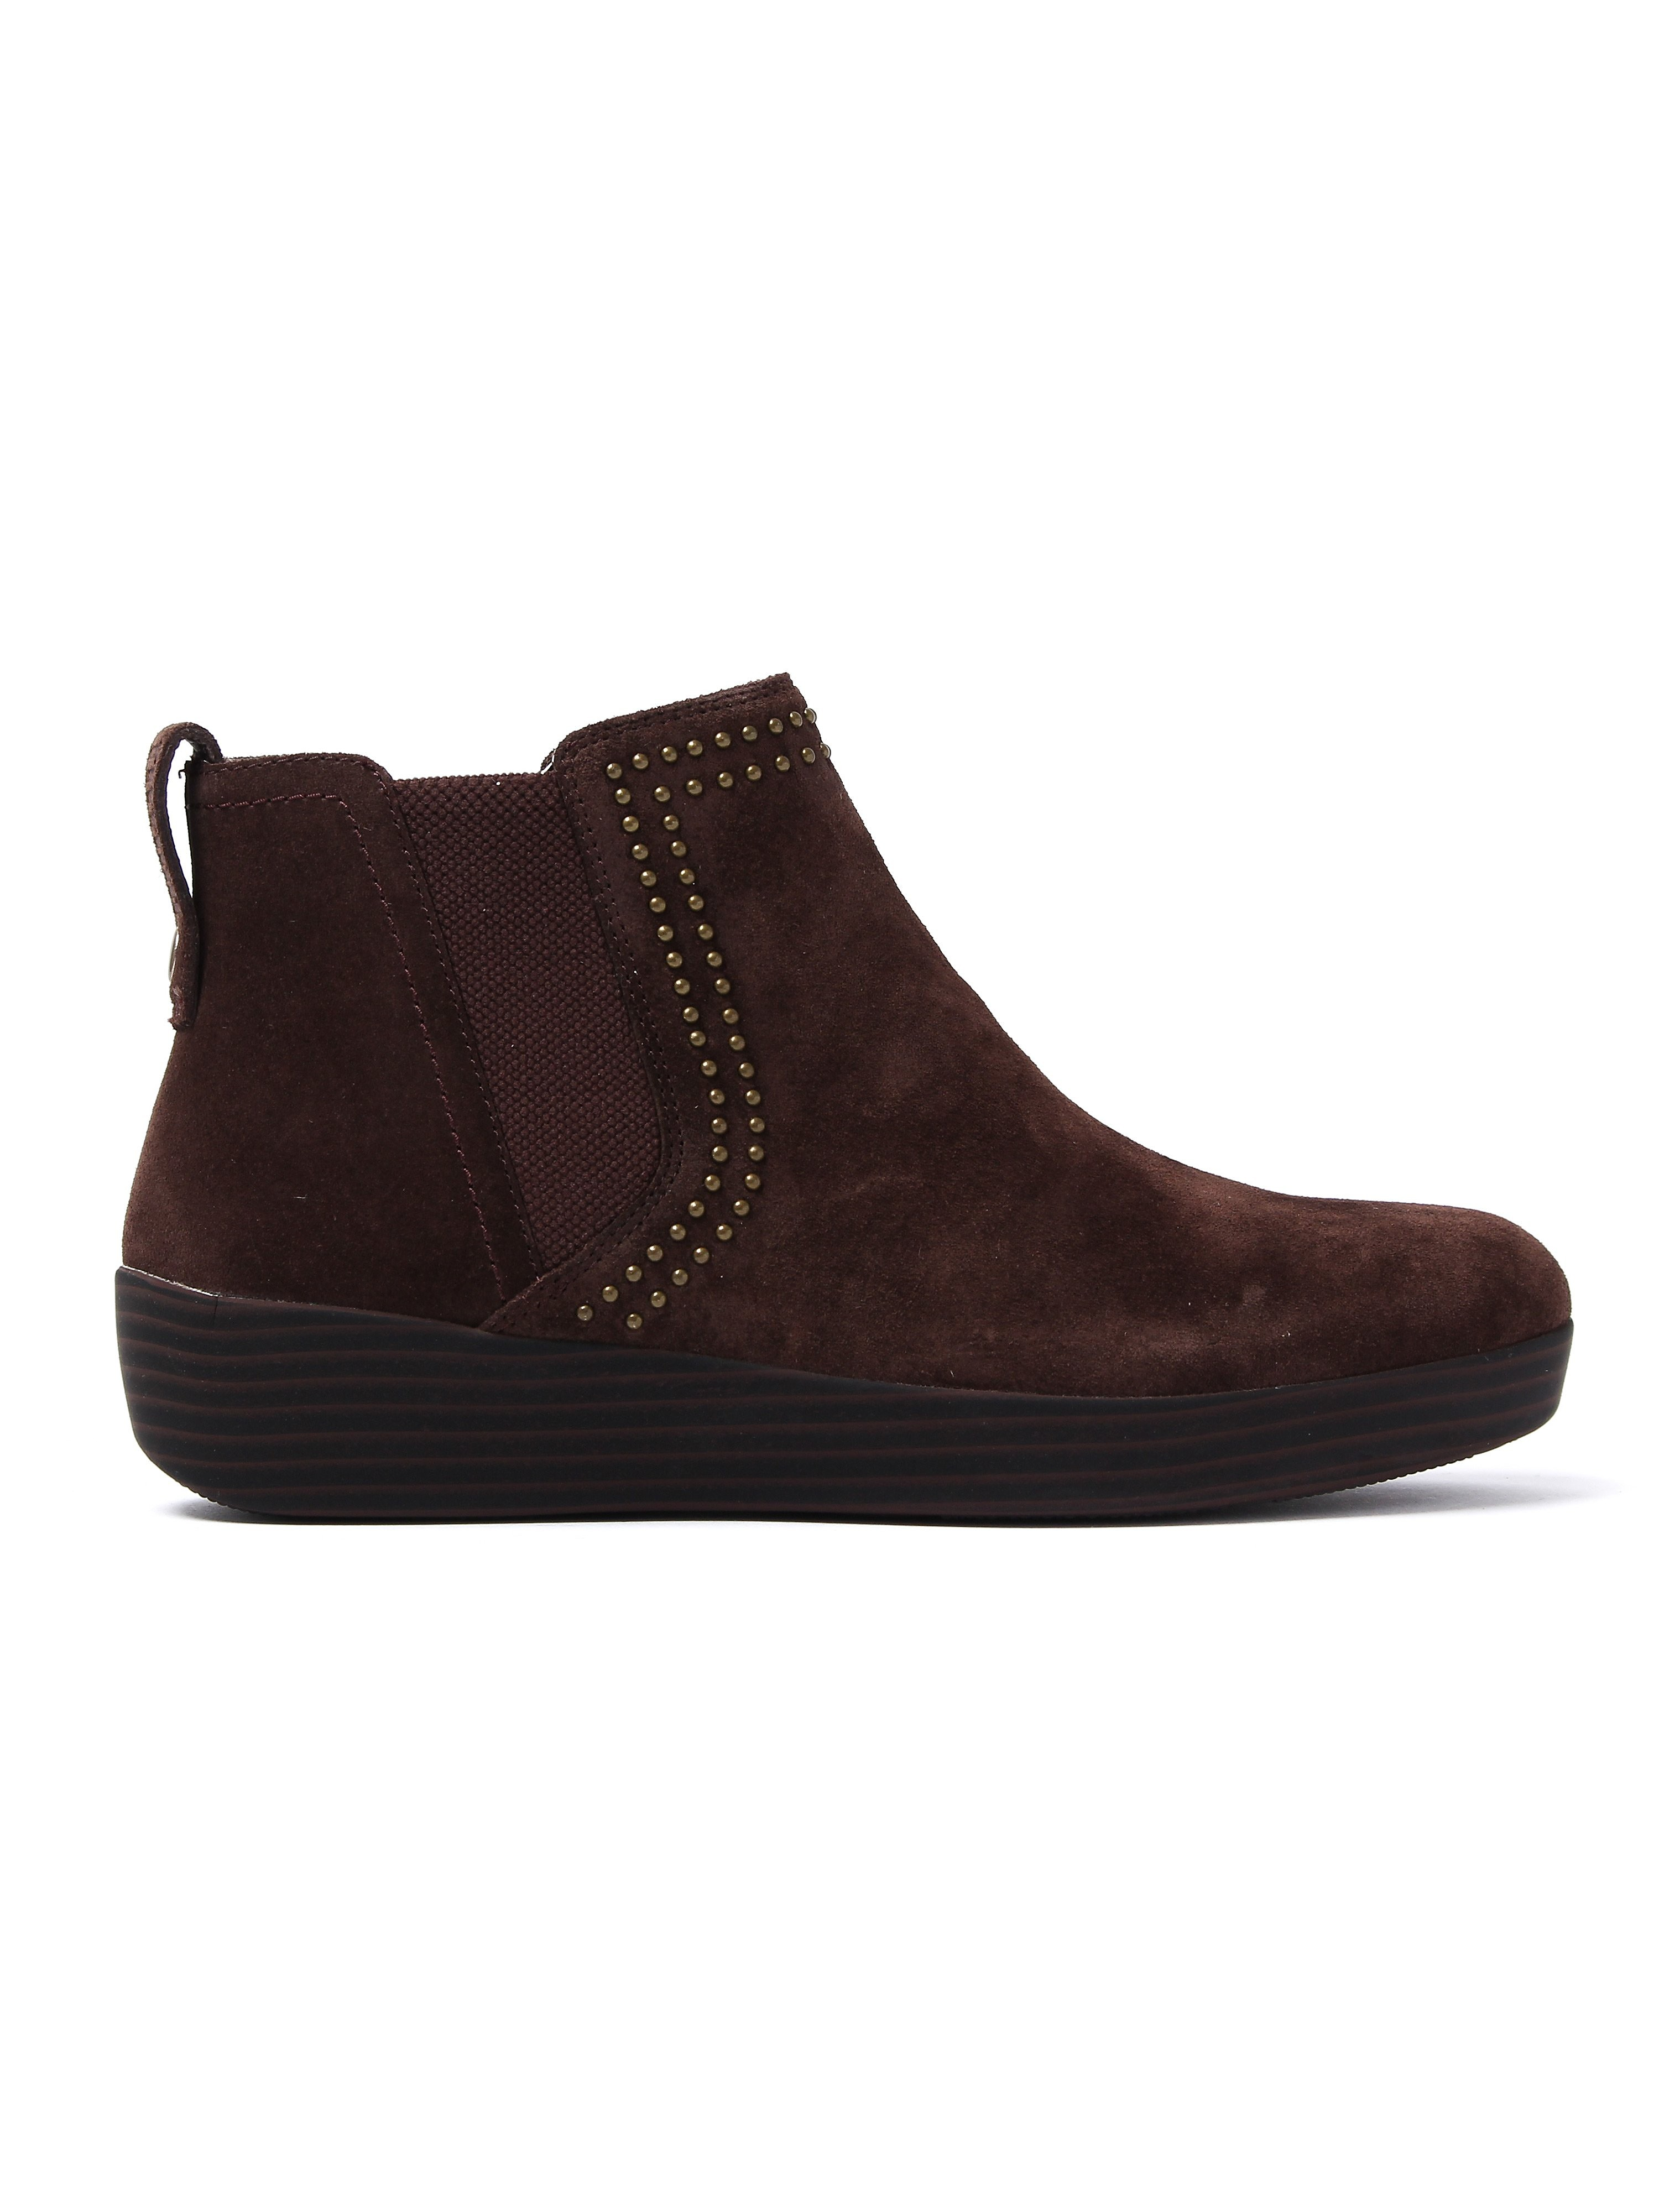 FitFlop Women's Superchelsea Studs Boots - Chocolate Suede